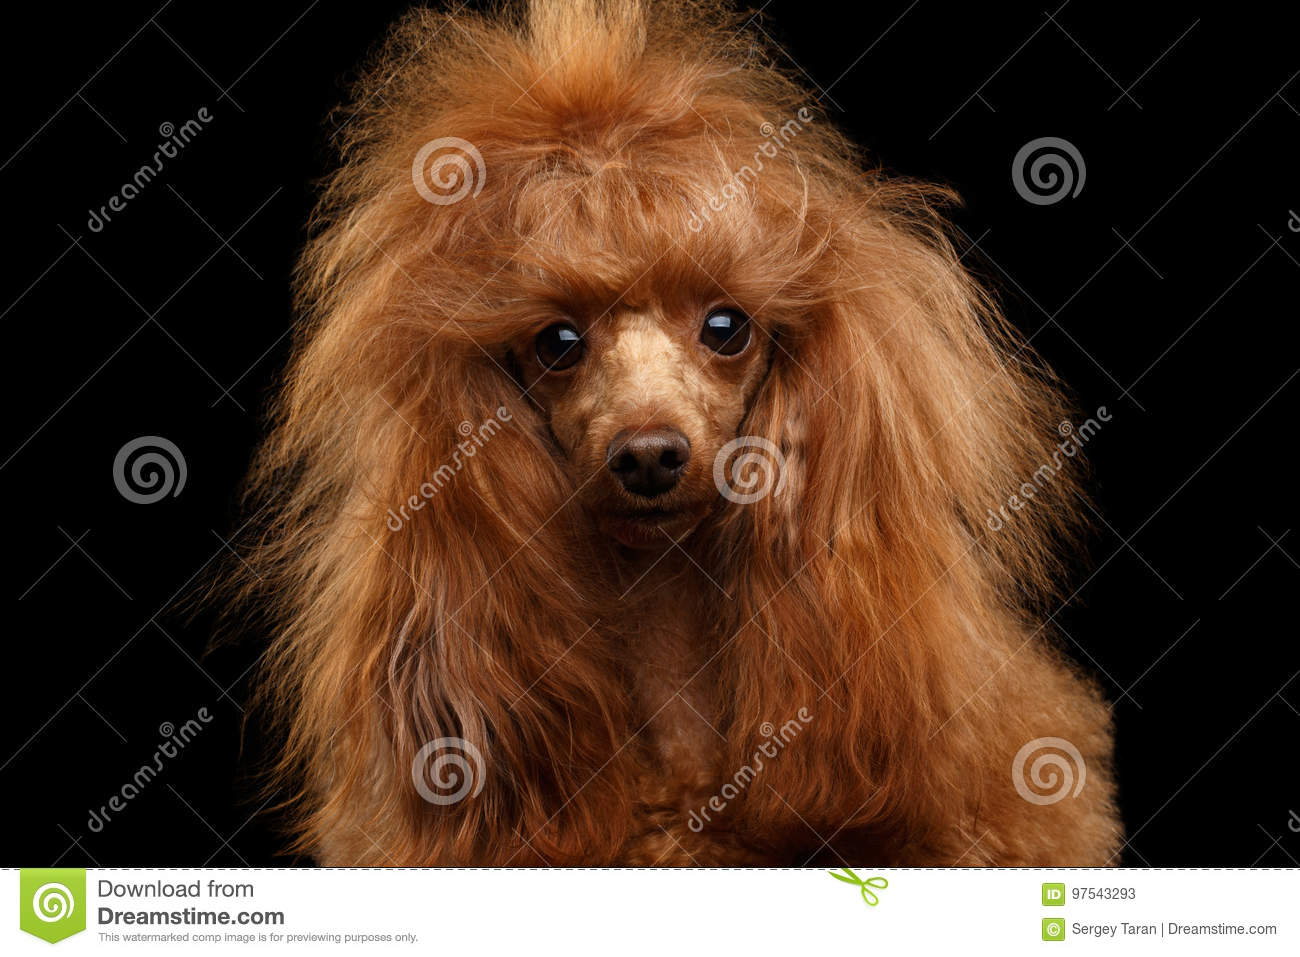 Red Toy Poodle Dog on Isolated Black Background